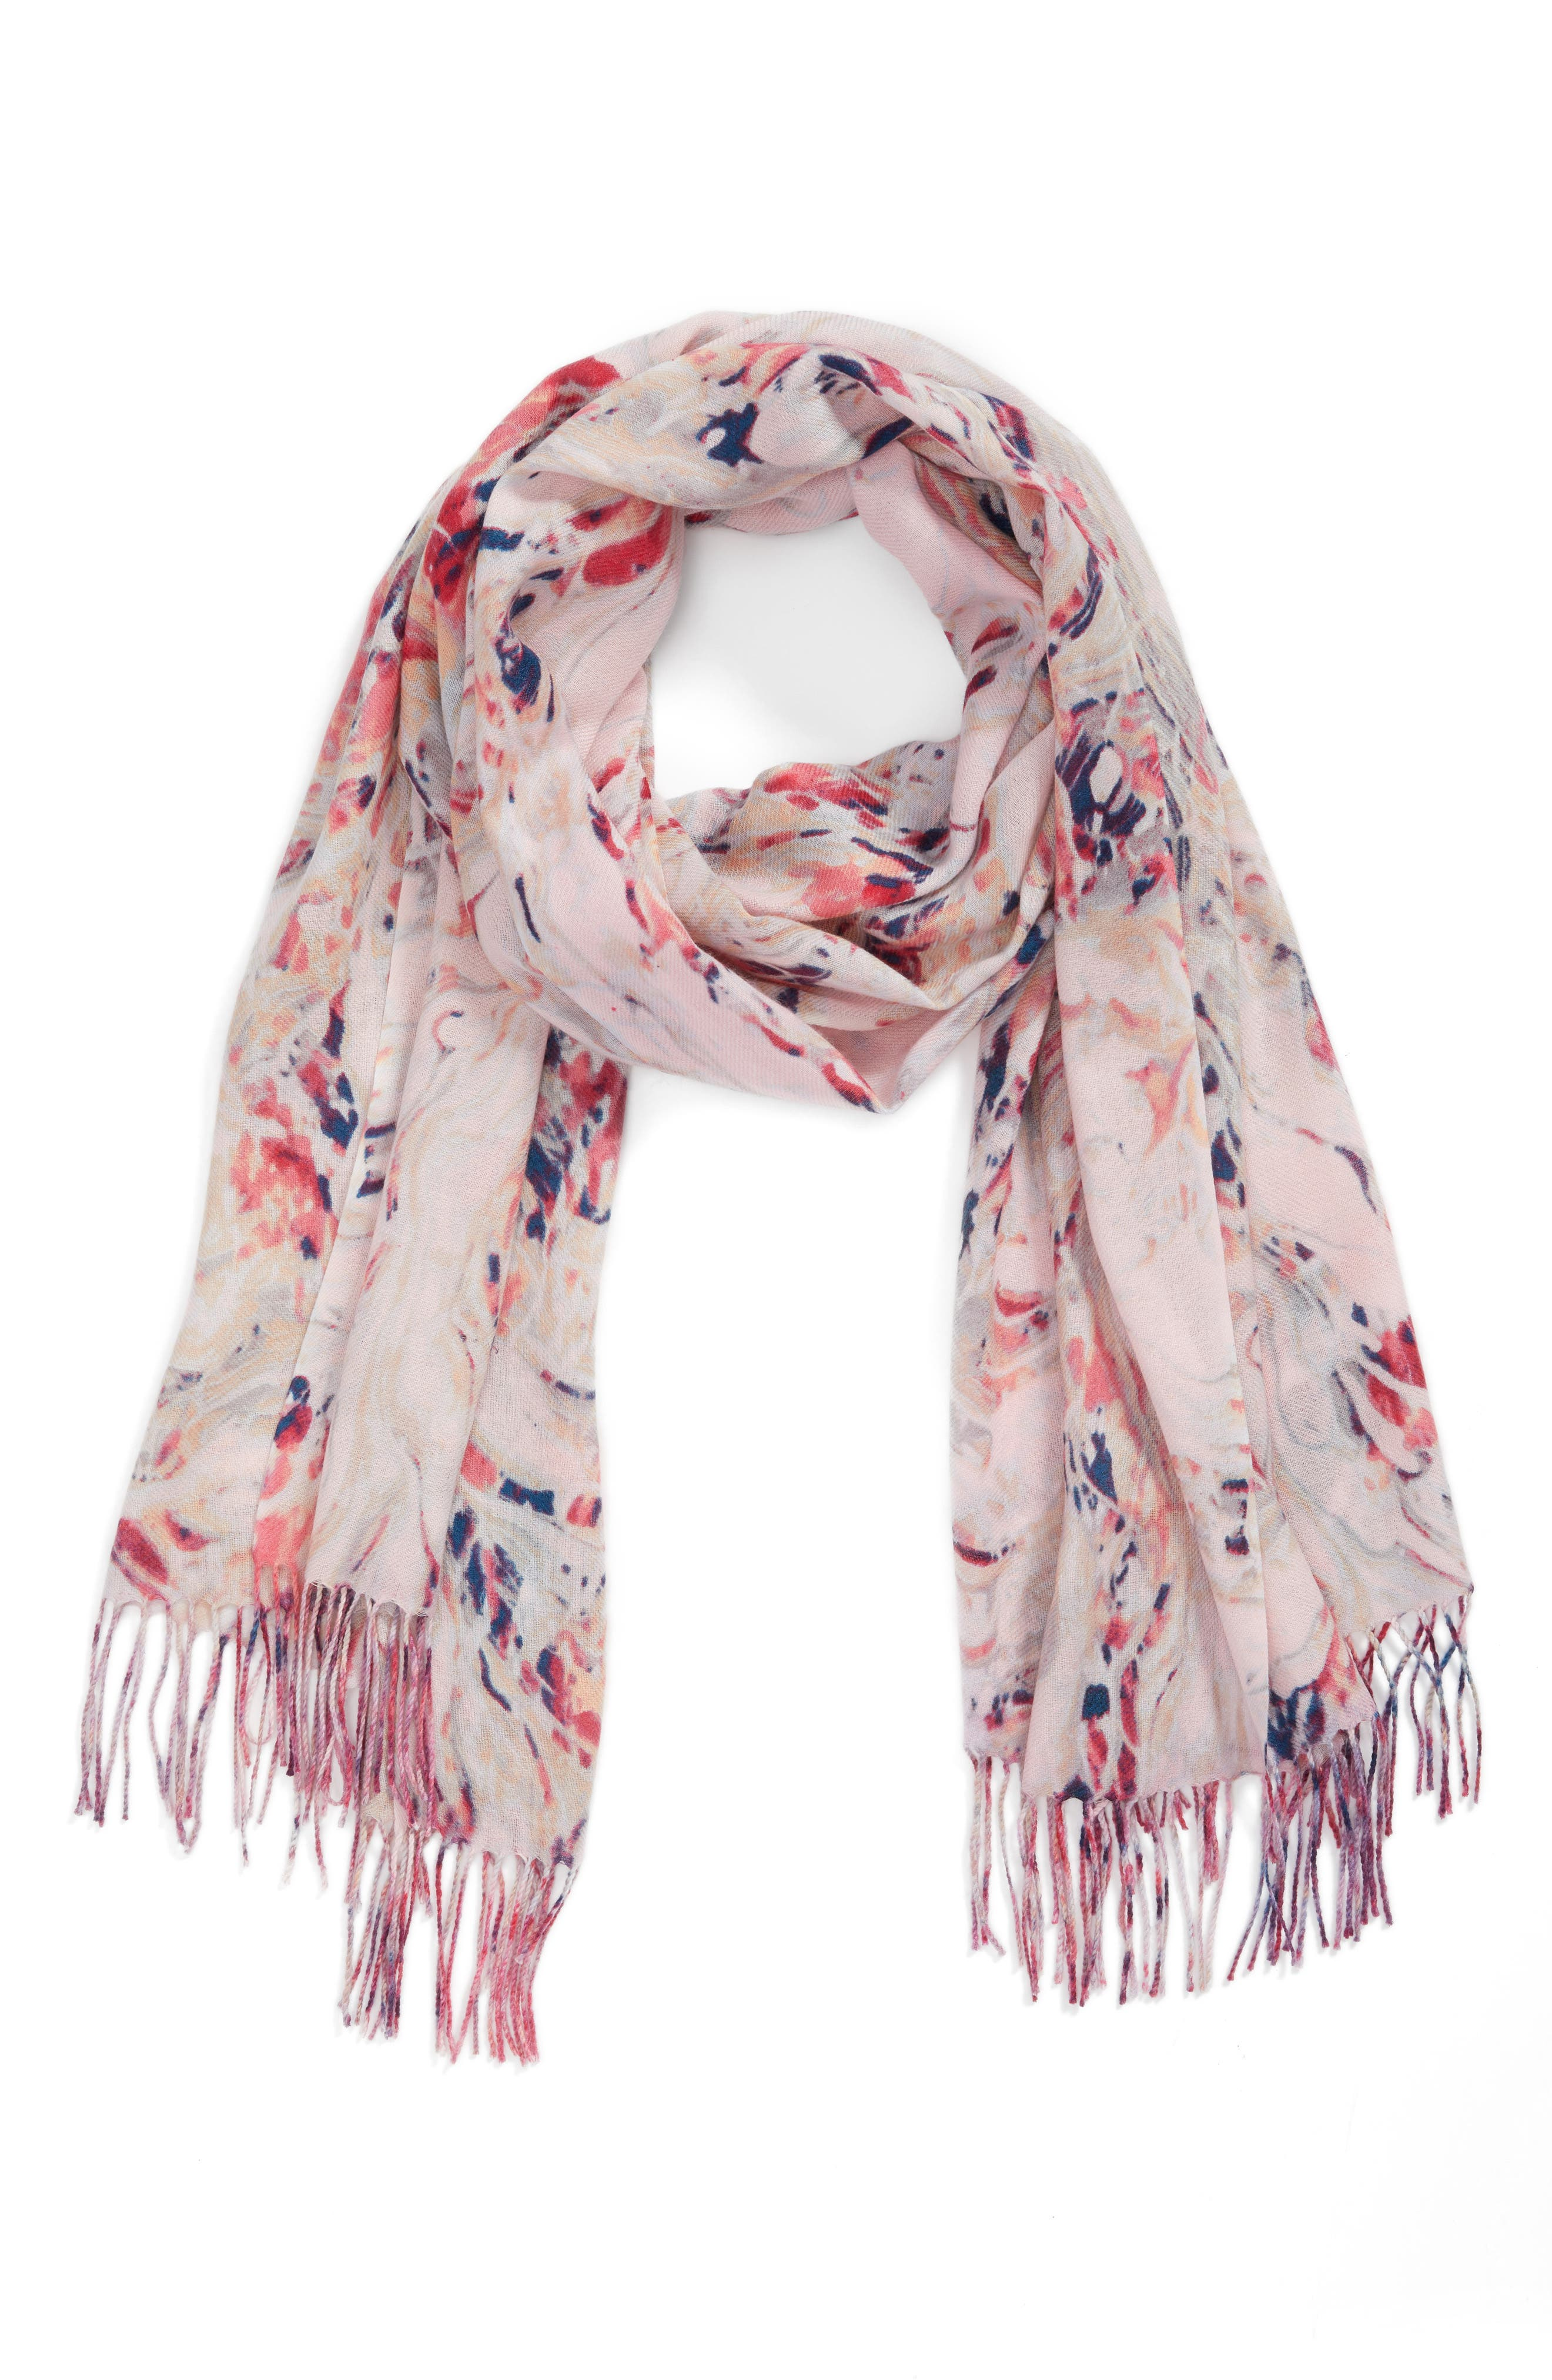 Marble Tissue Wool & Cashmere Scarf,                             Alternate thumbnail 8, color,